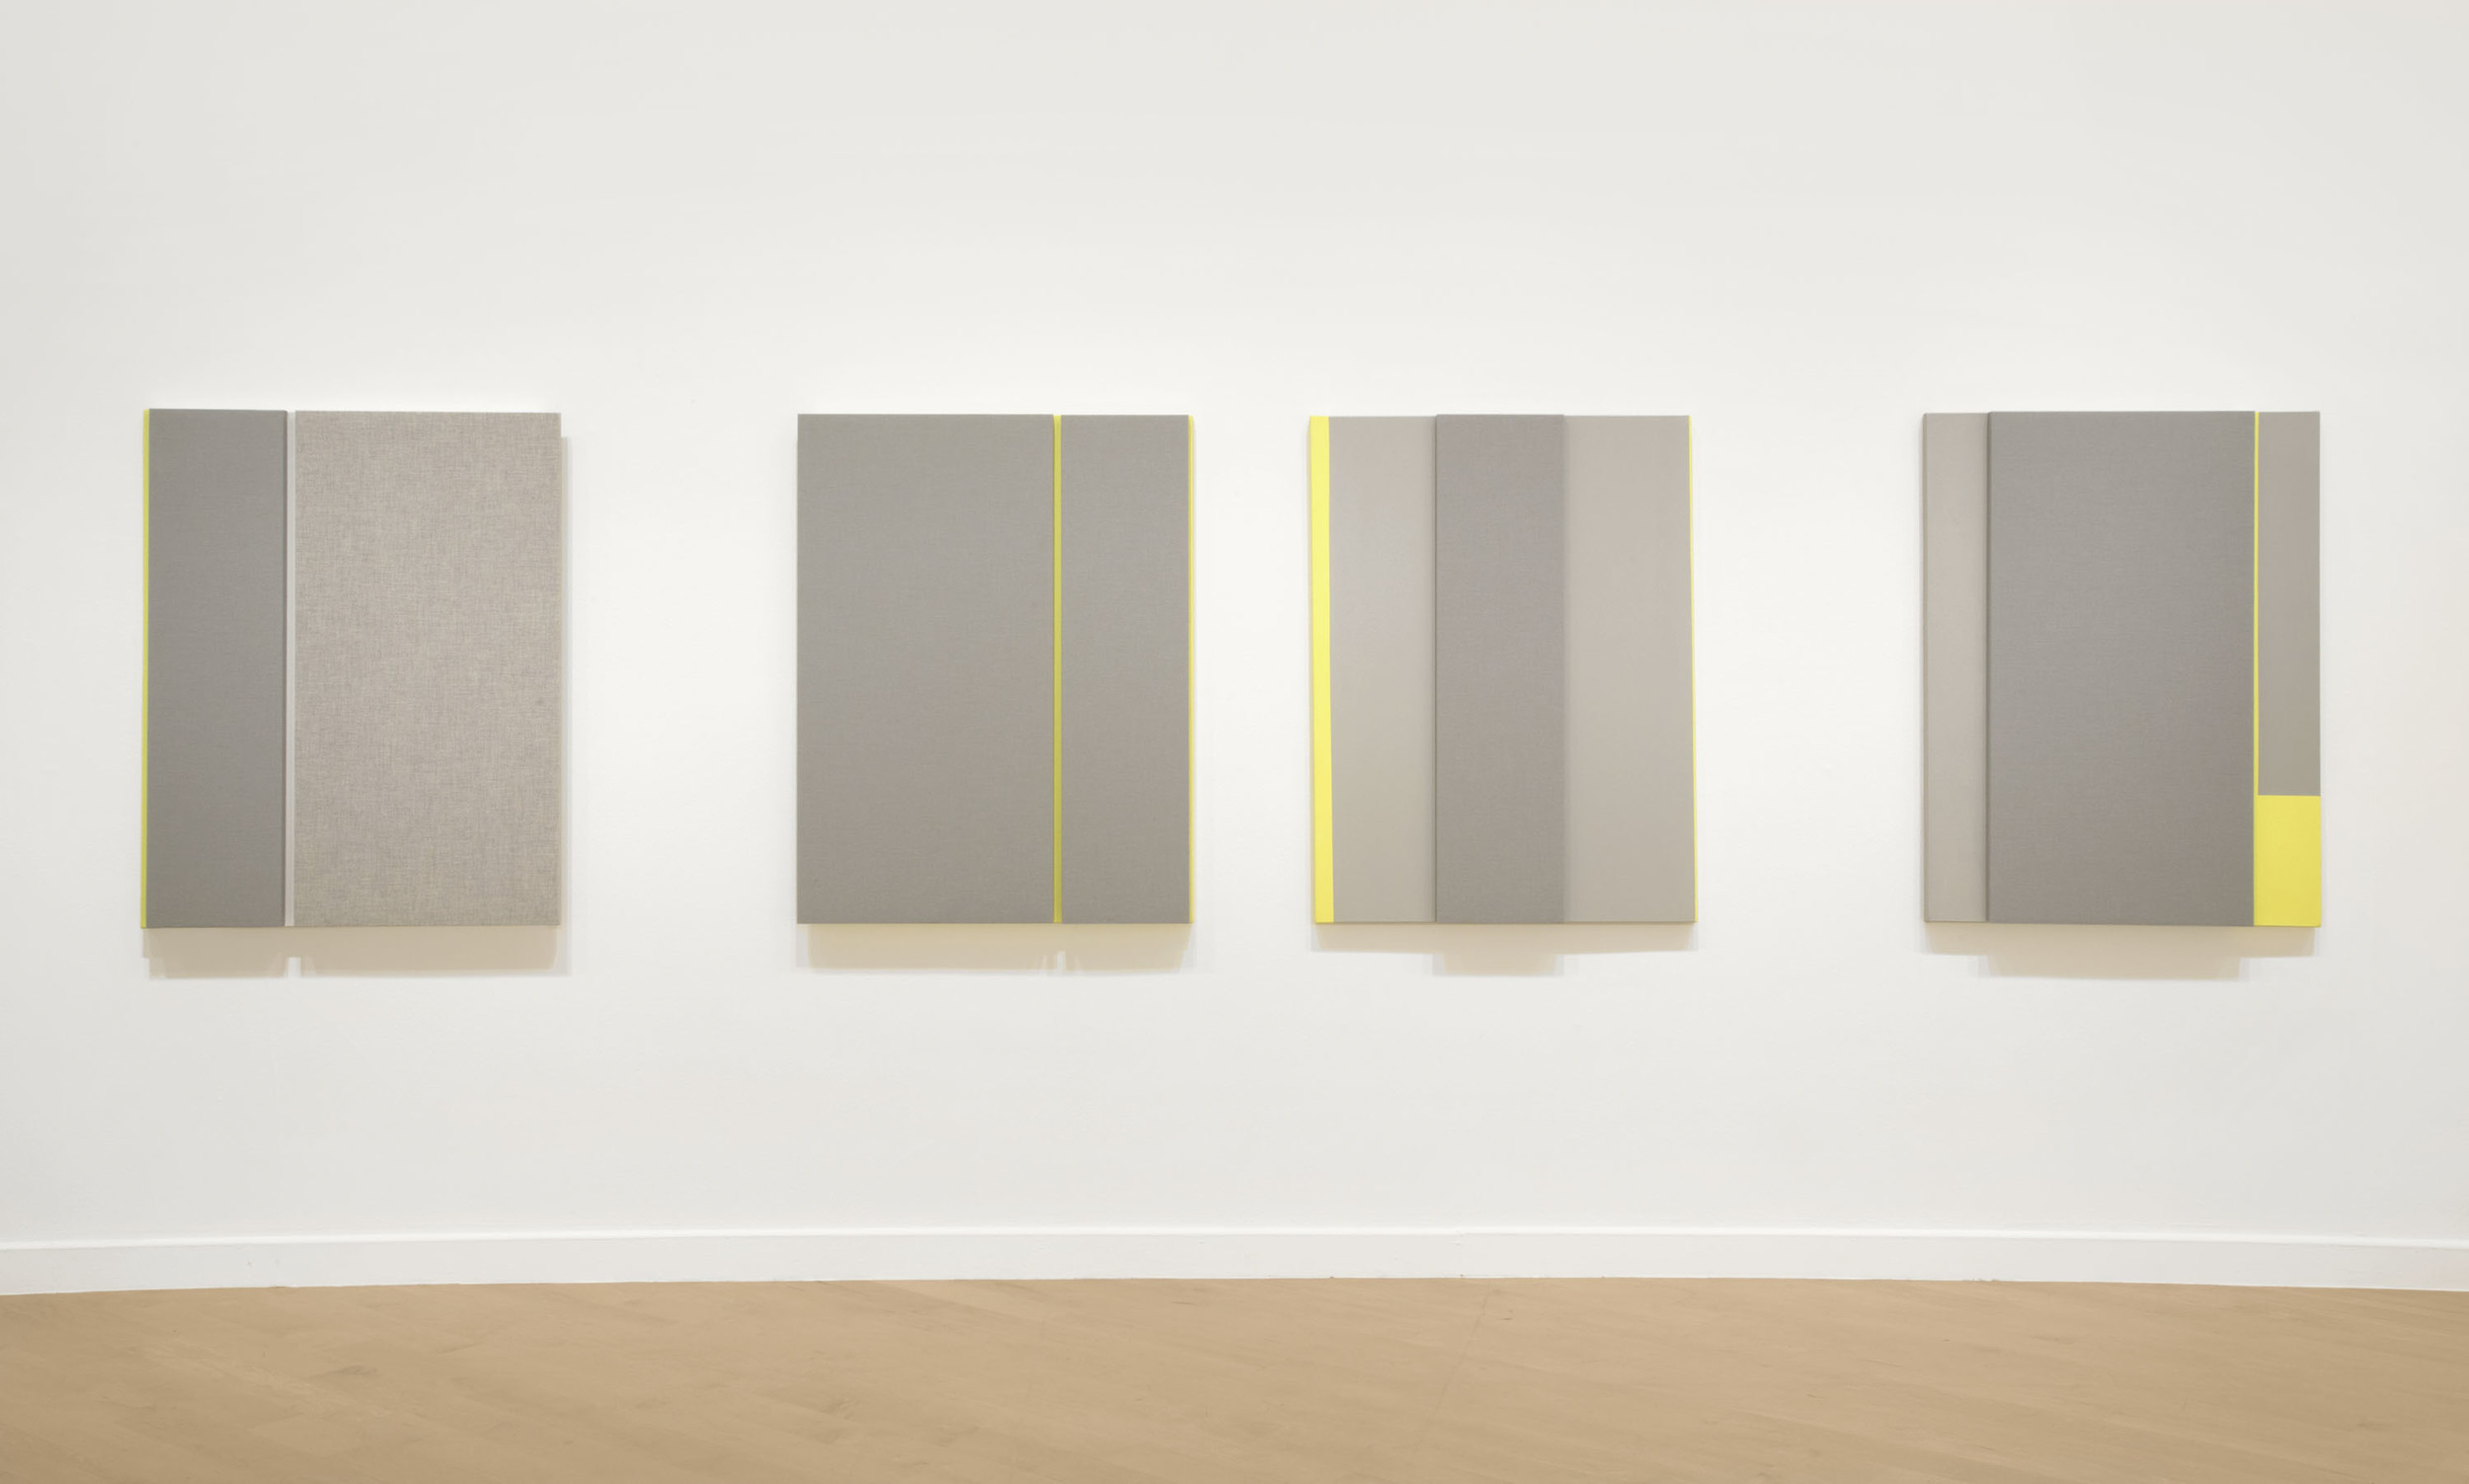 Soft Gray Tone with Reverberation #1-4,Acoustic absorber panel and acrylic paint on canvas, 36 x 48 inches each, 2013.